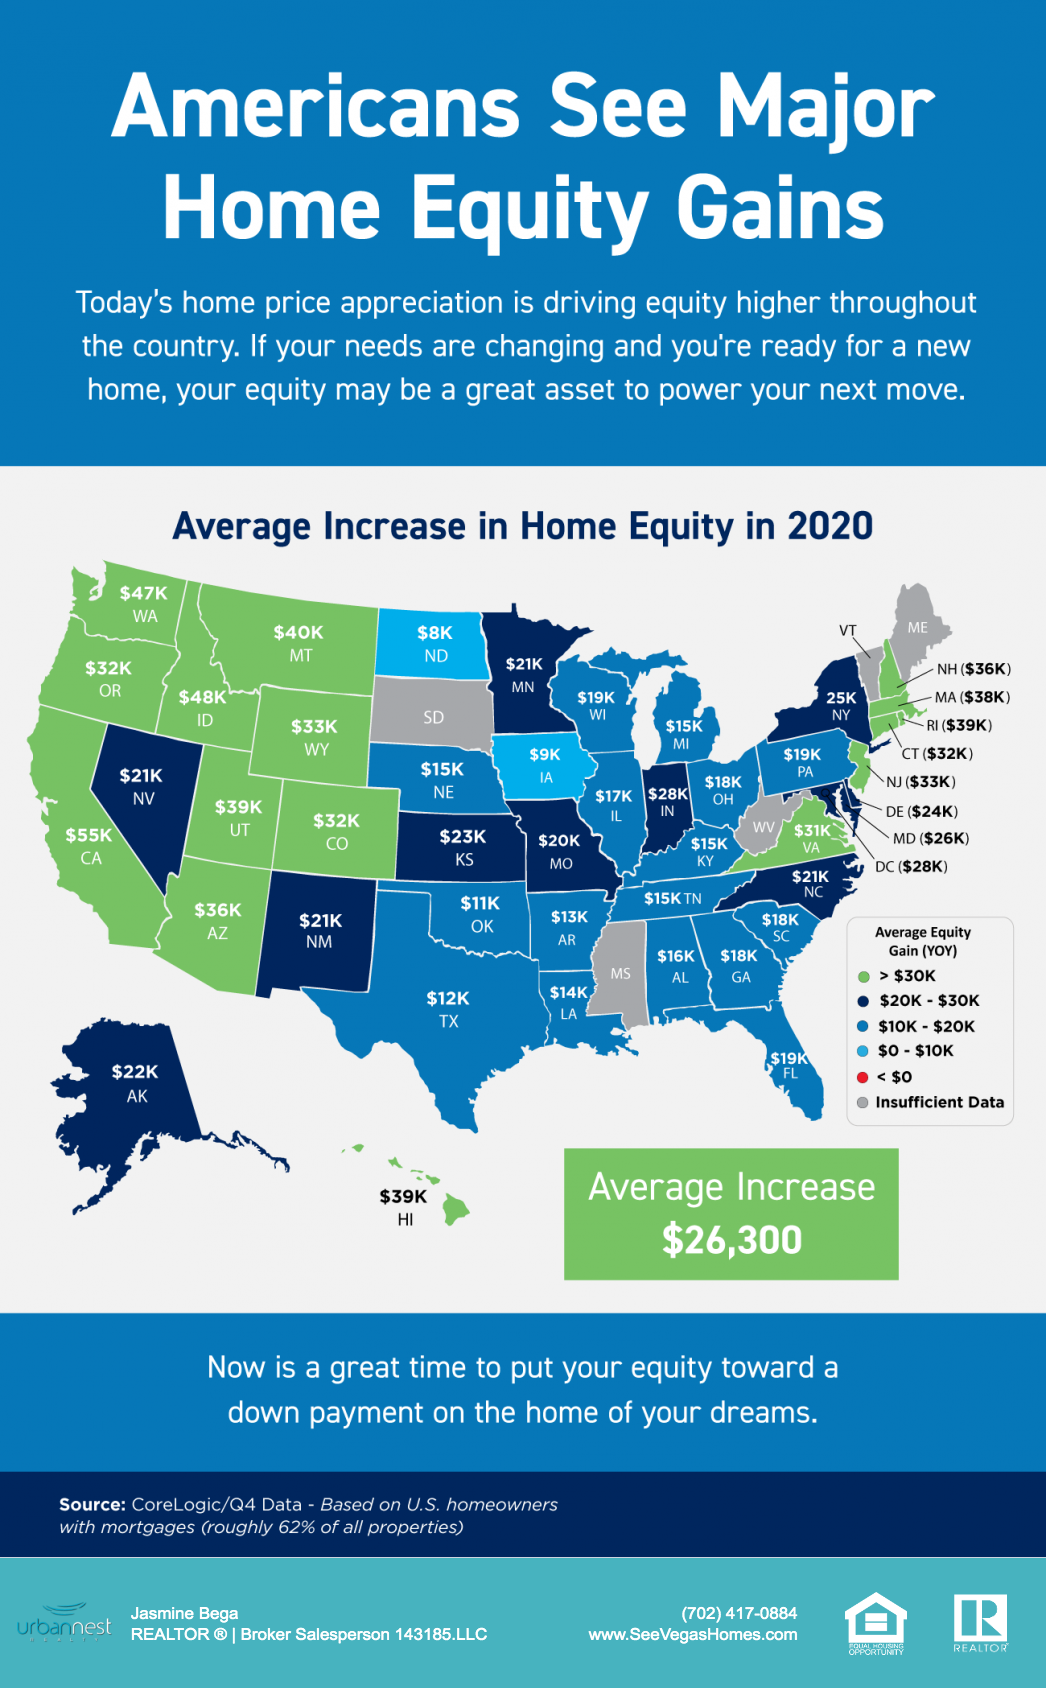 Americans See Major Home Equity Gains 2020 SeeVegasHomes